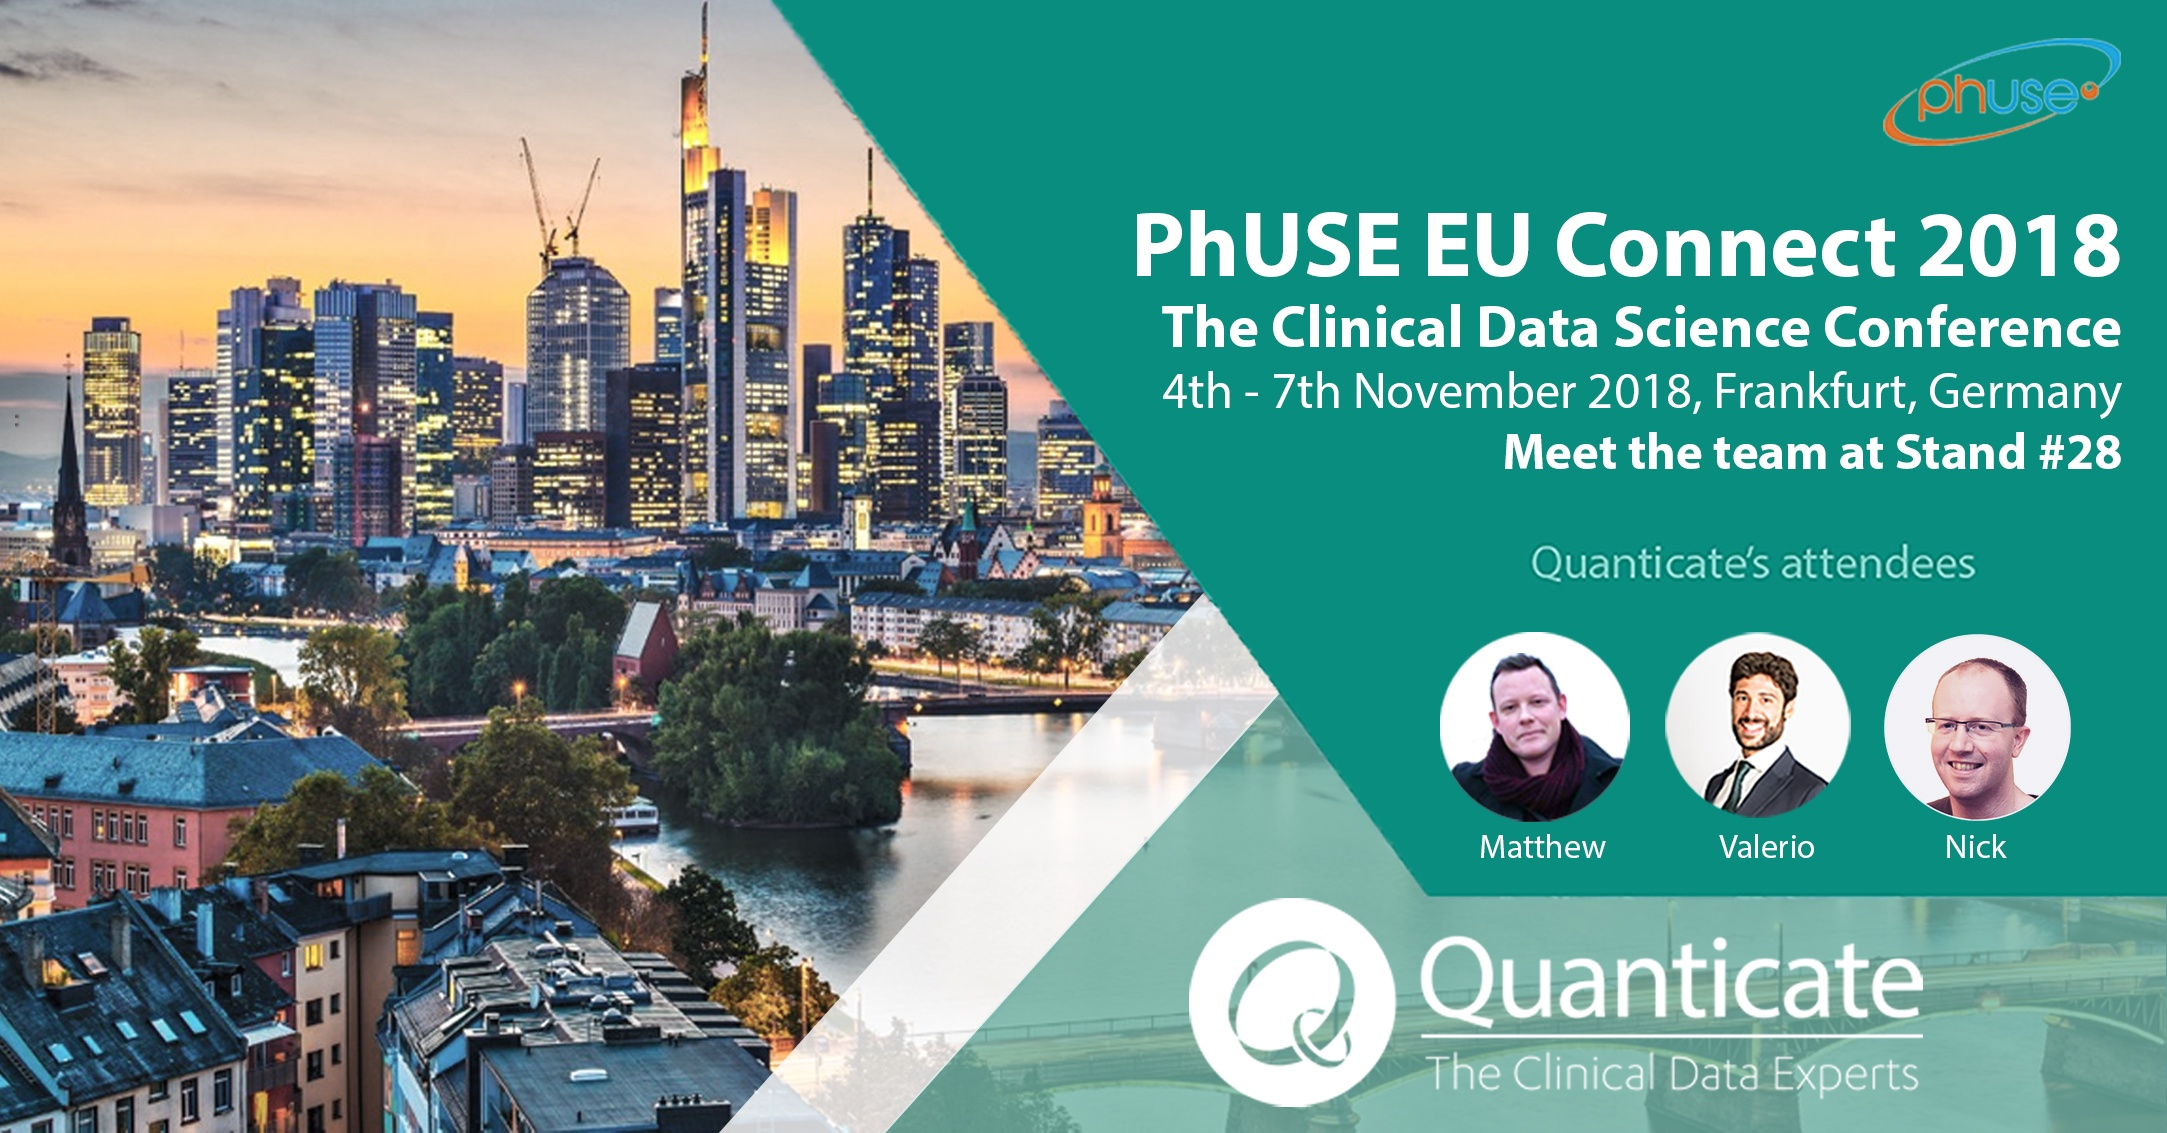 Quanticate Exhibits at the PhUSE EU Connect 2018 in Frankfurt - Featured Image